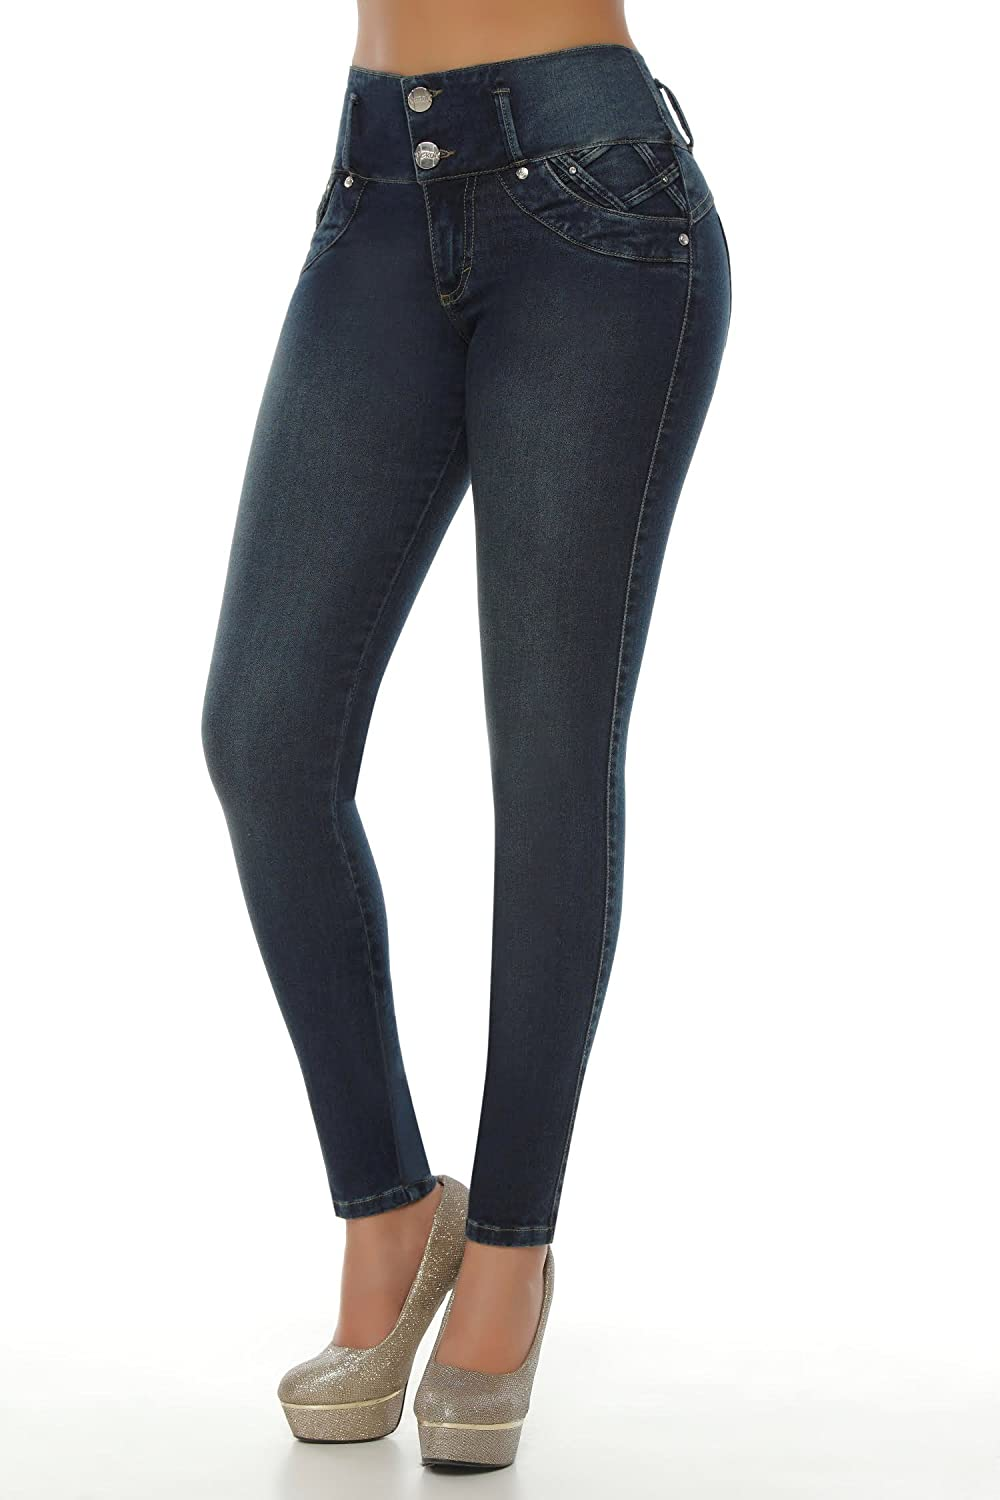 VEROX JEANS - SKINNY JEANS - PANTALONES COLOMBIANOS 2214 well-wreapped